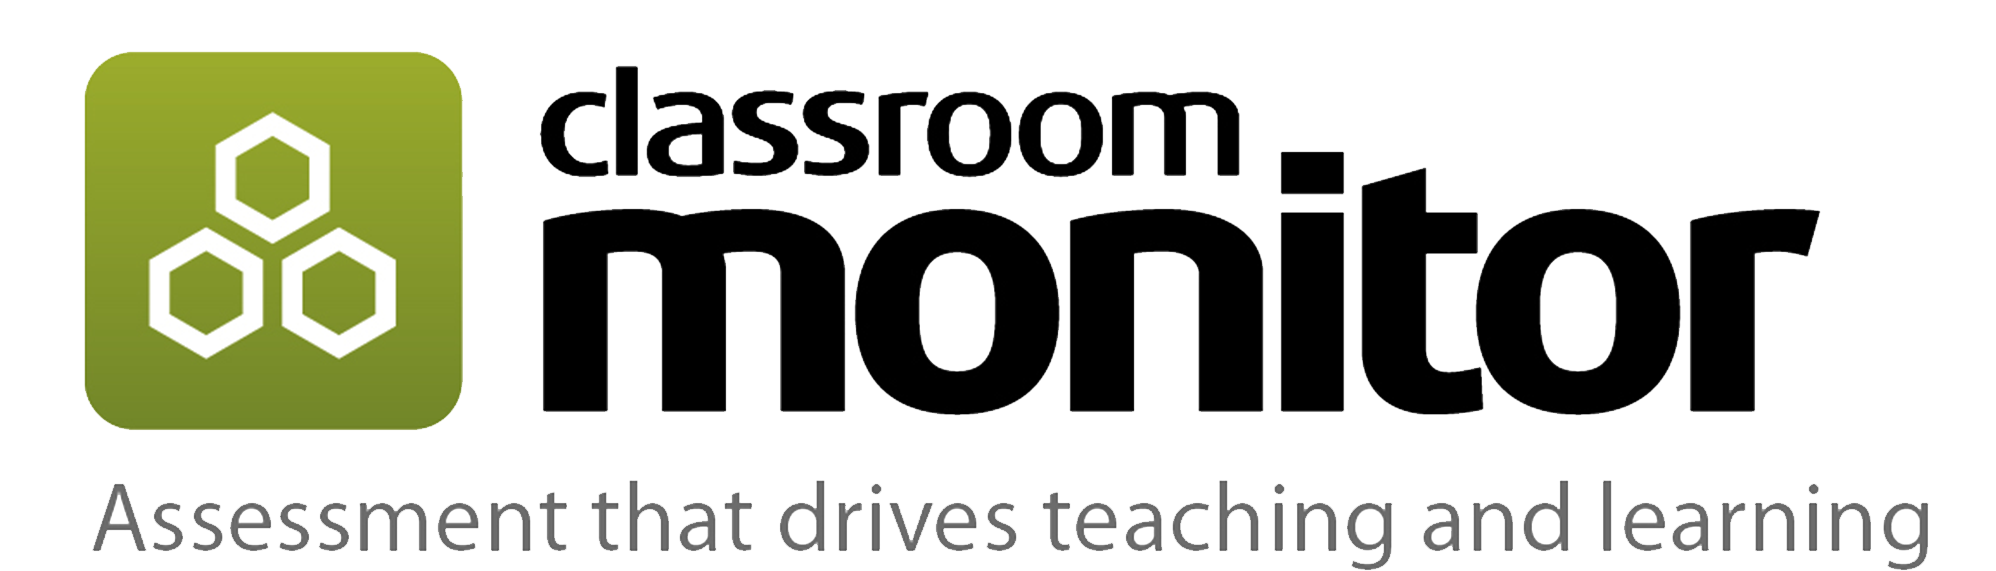 Classroom-Monitor-Logo-High-Res.png